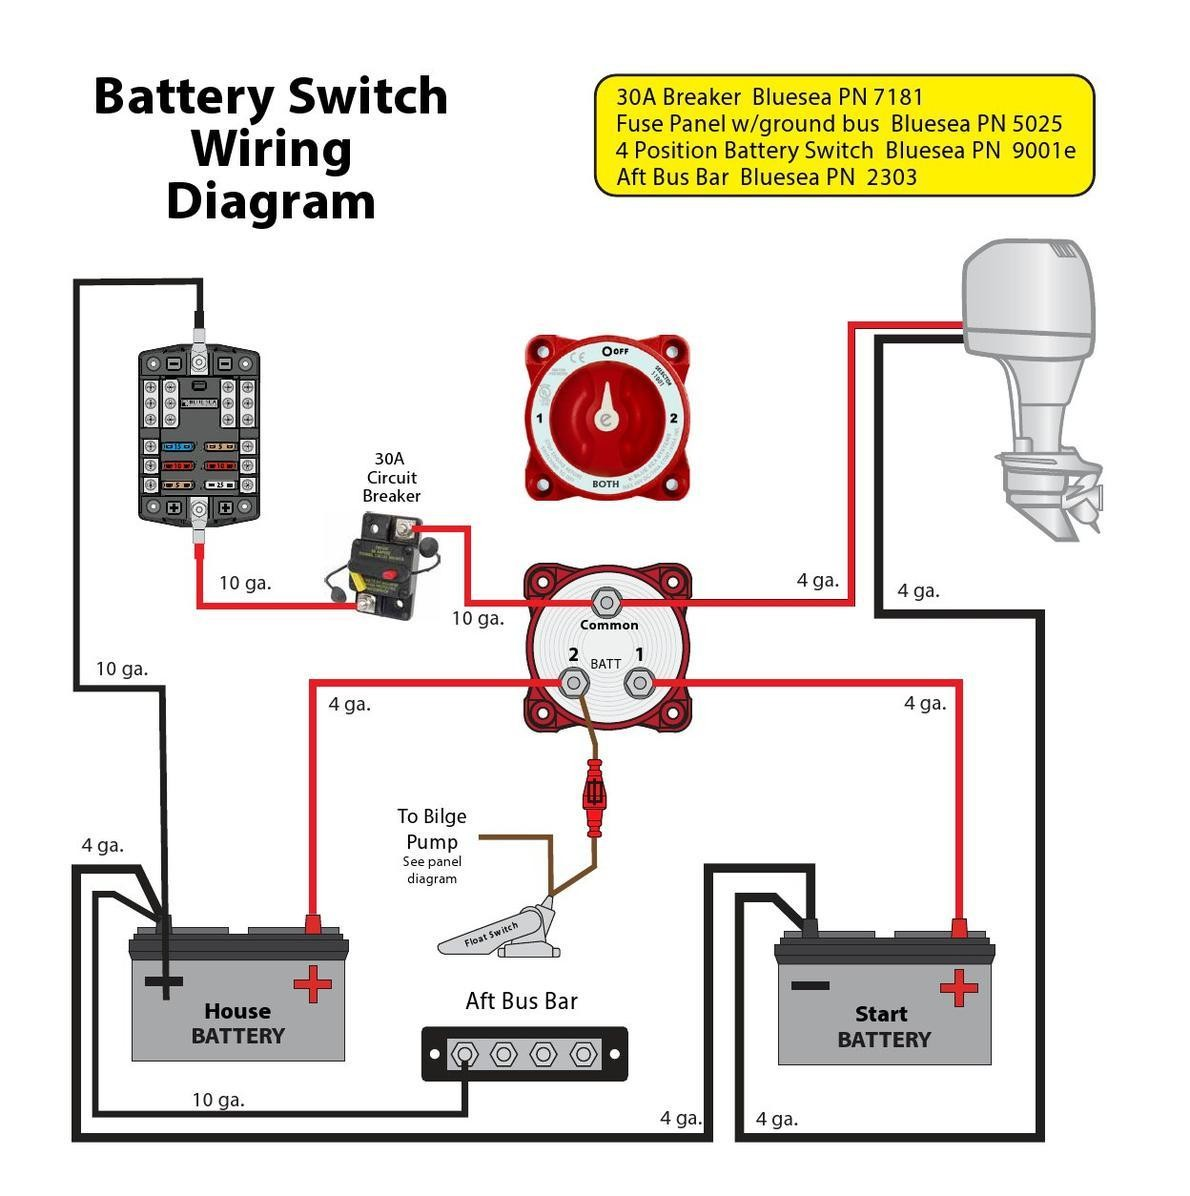 Wiring Diagram For Ac Disconnect Free Download Wiring Diagram - Ac  disconnect wiring diagram